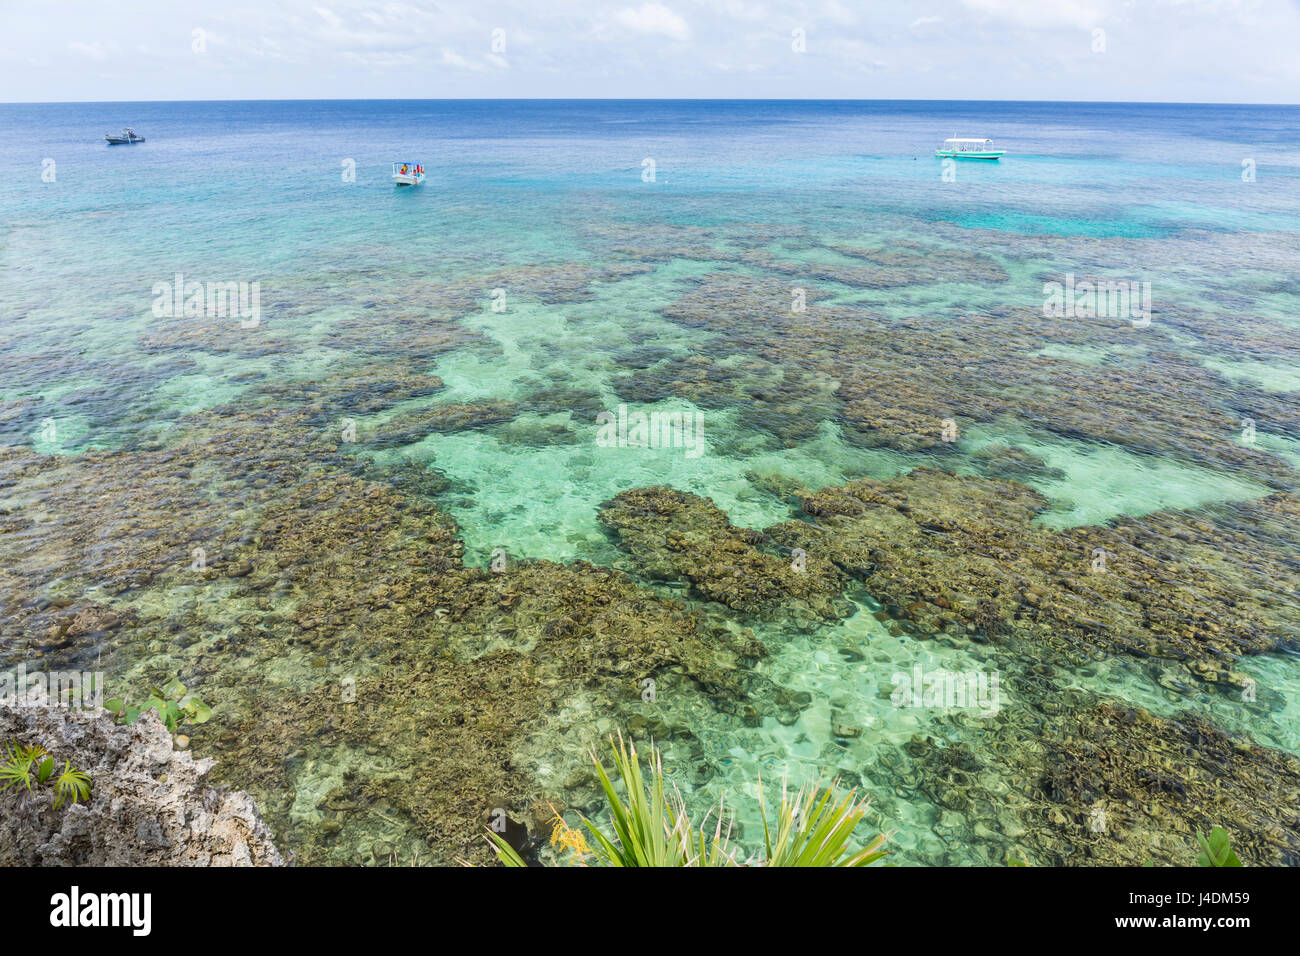 Dive boats in the crystal clear waters just off the Iron Shore of the Roatan barrier Reef in West Bay, Roatan, Honduras - Stock Image